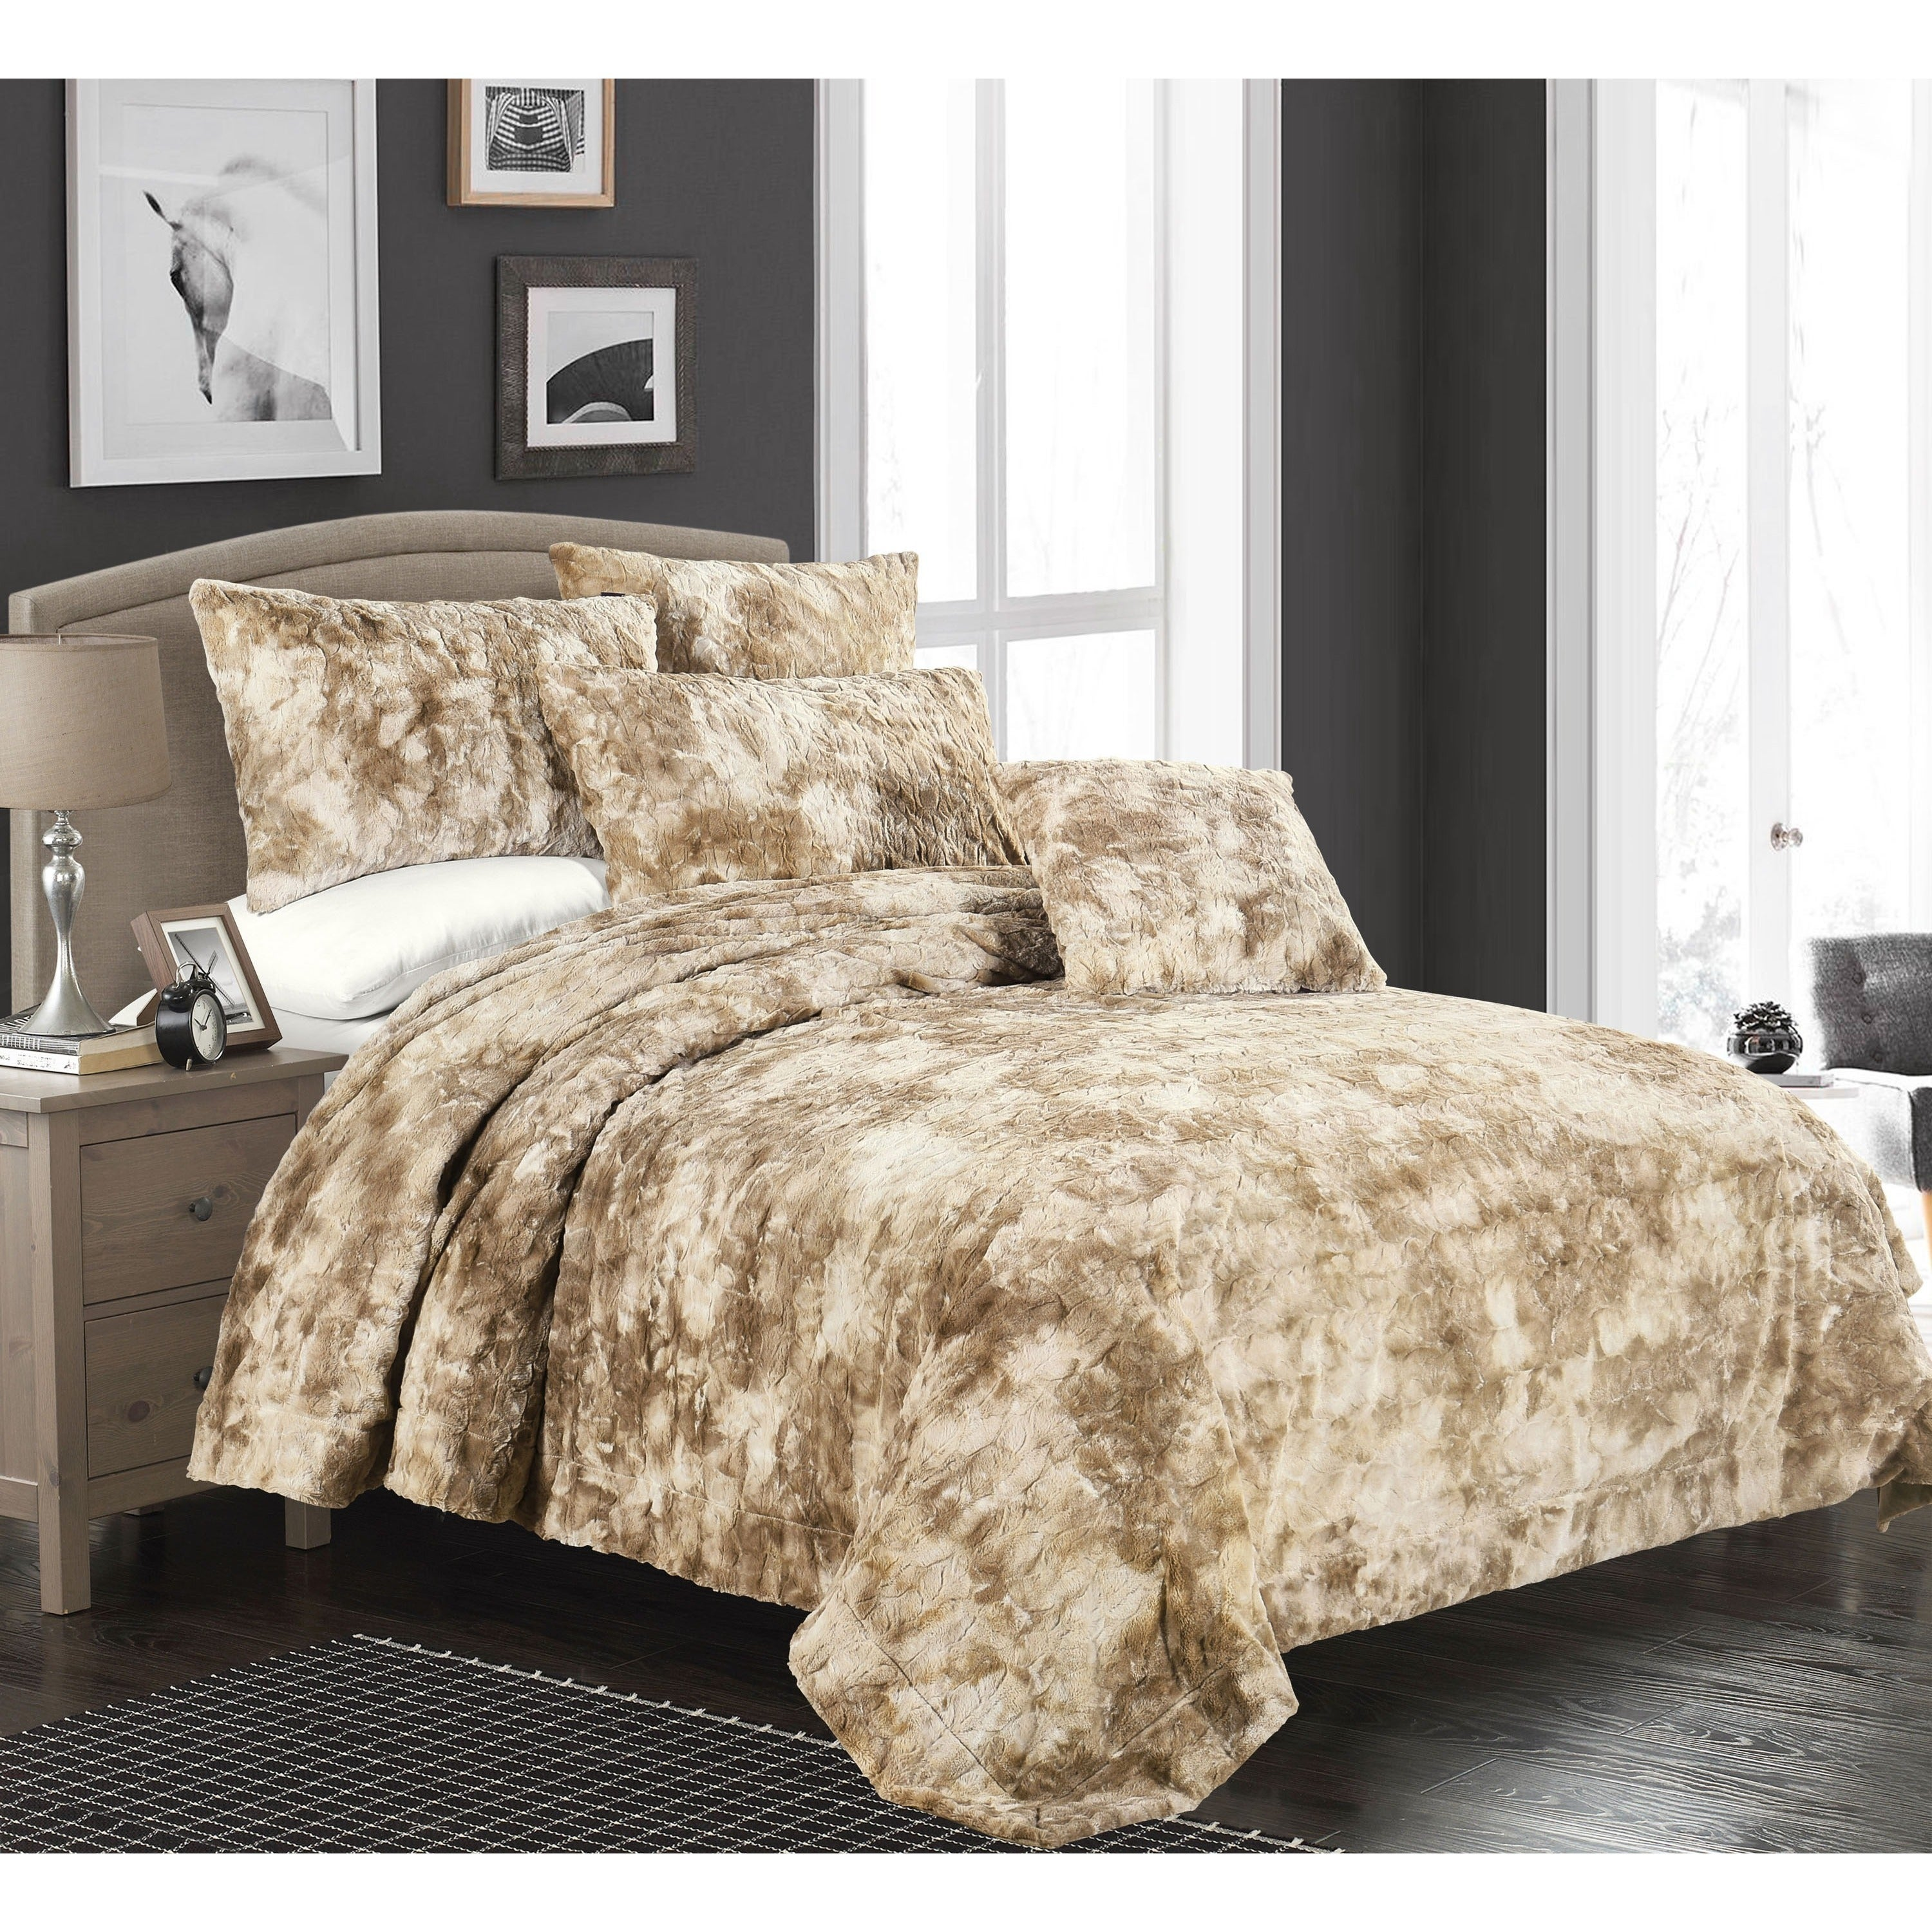 size comforter set chocolate beautiful embroidery bedspread and faux bedding fur bedroom king discount cozy bed ribbon curtain sets